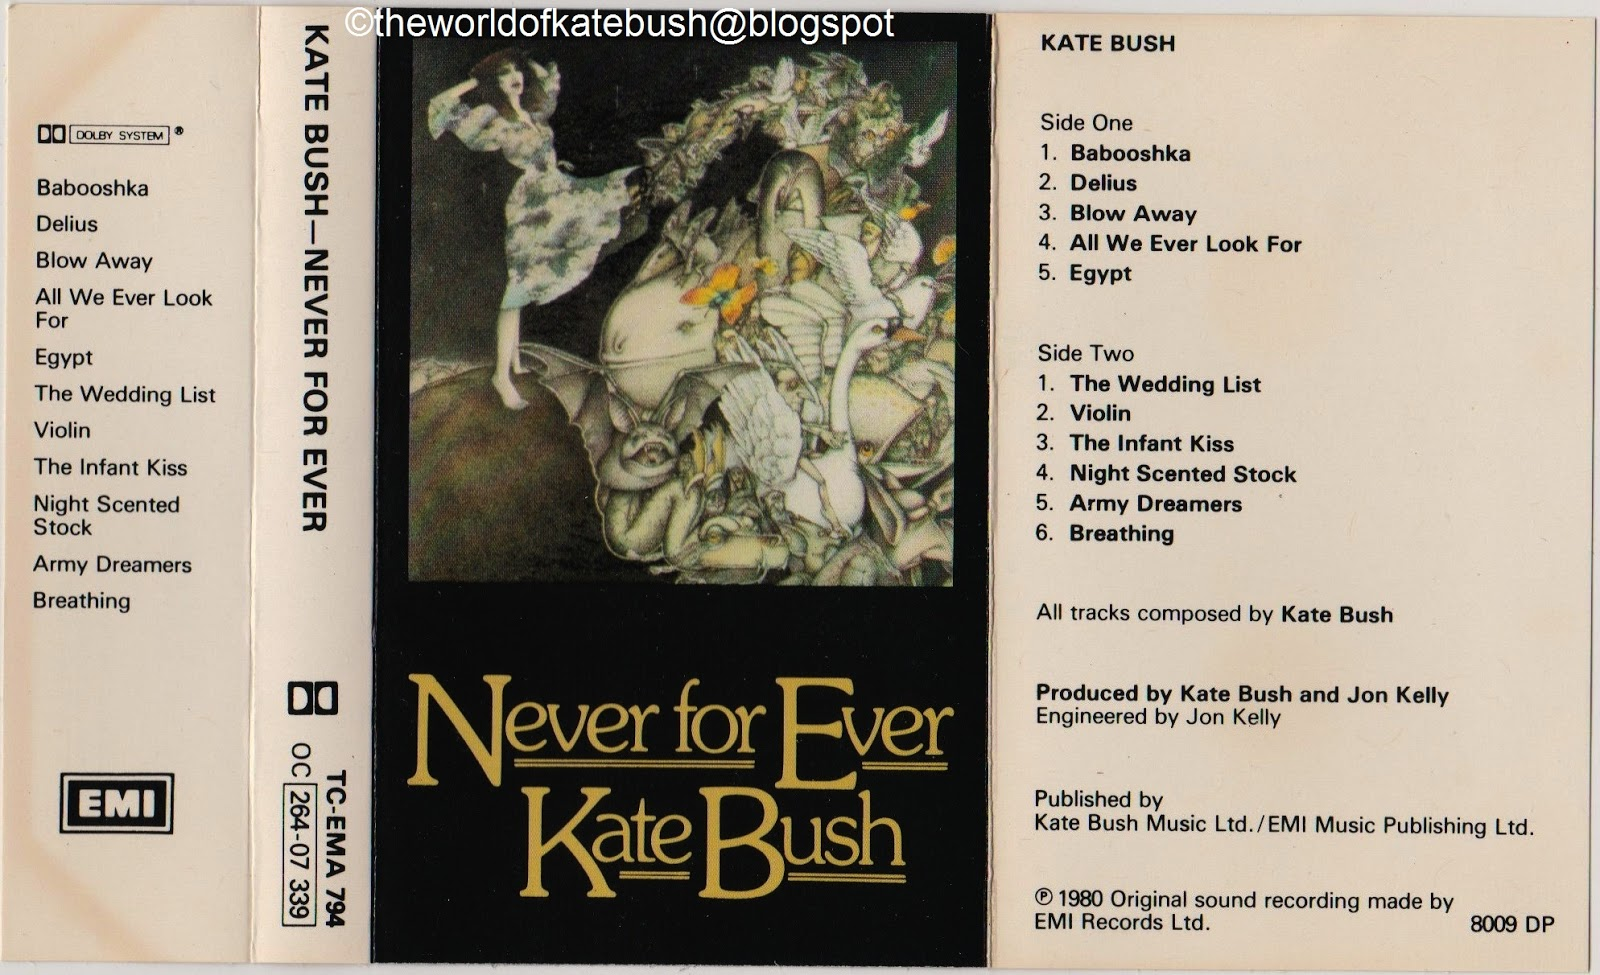 THE WORLD OF KATE BUSH: Never For Ever - UK First Issue Cassette